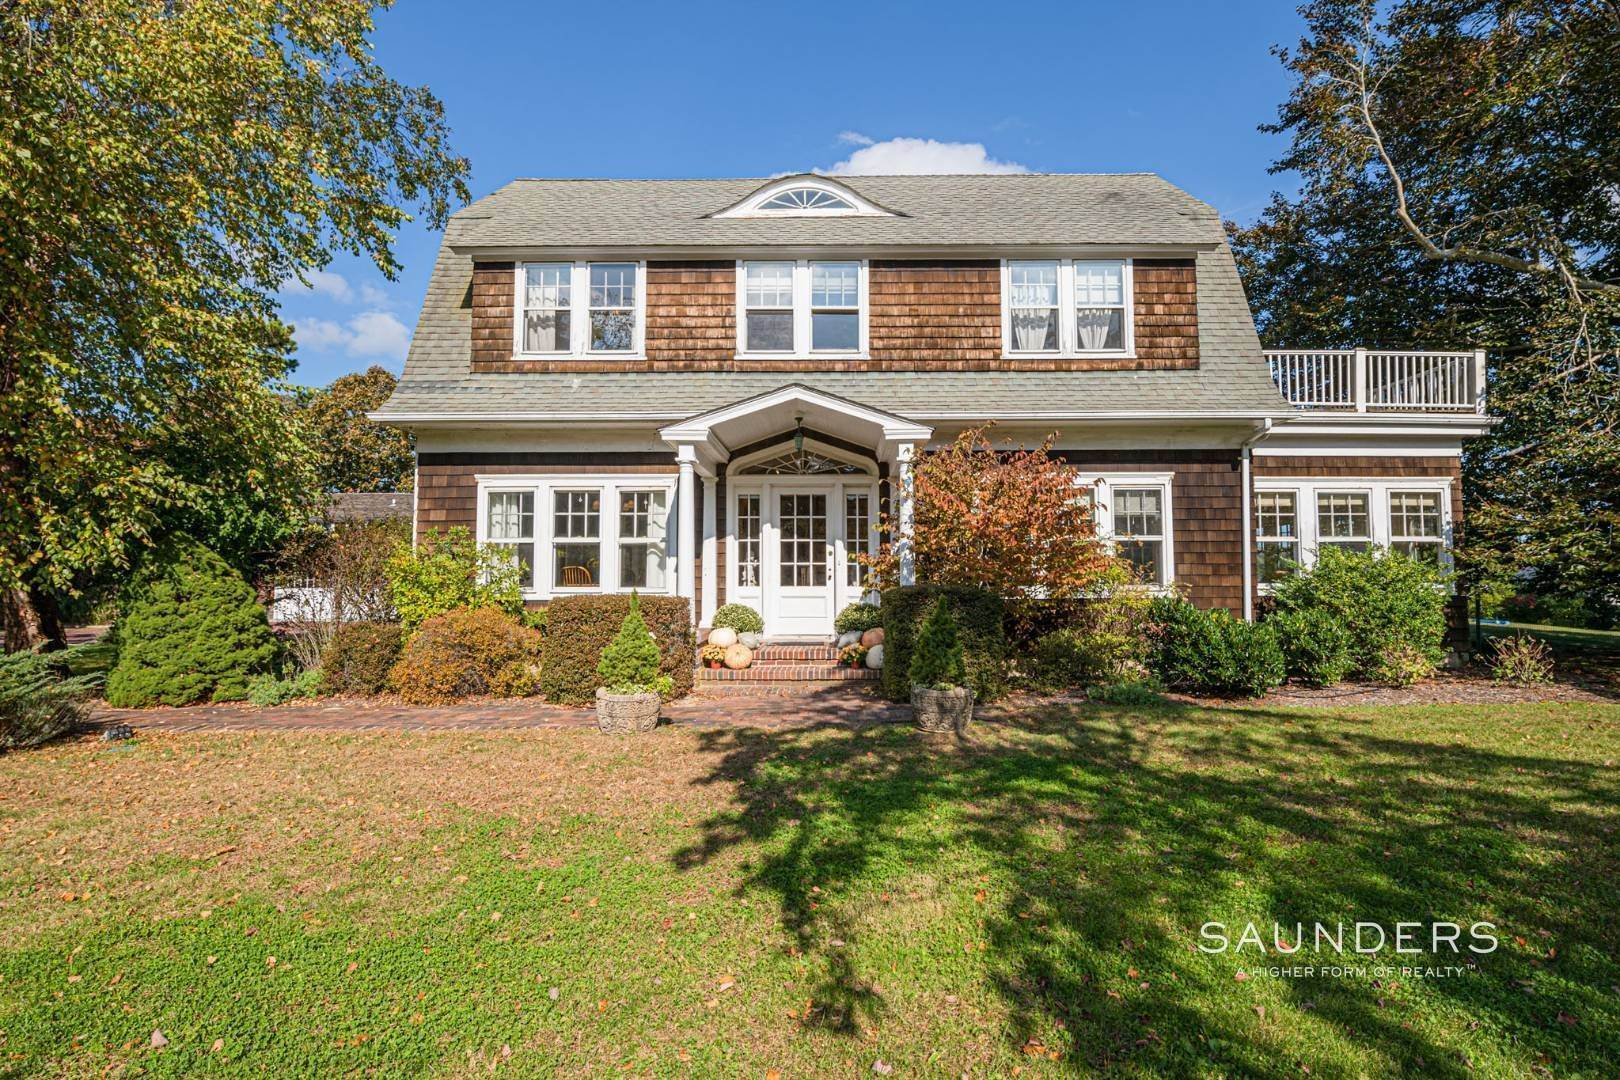 3. Single Family Homes for Sale at South Of Highway Waterfront Traditional In Quogue 21 Old Point Road, Quogue Village, Southampton Town, NY 11959